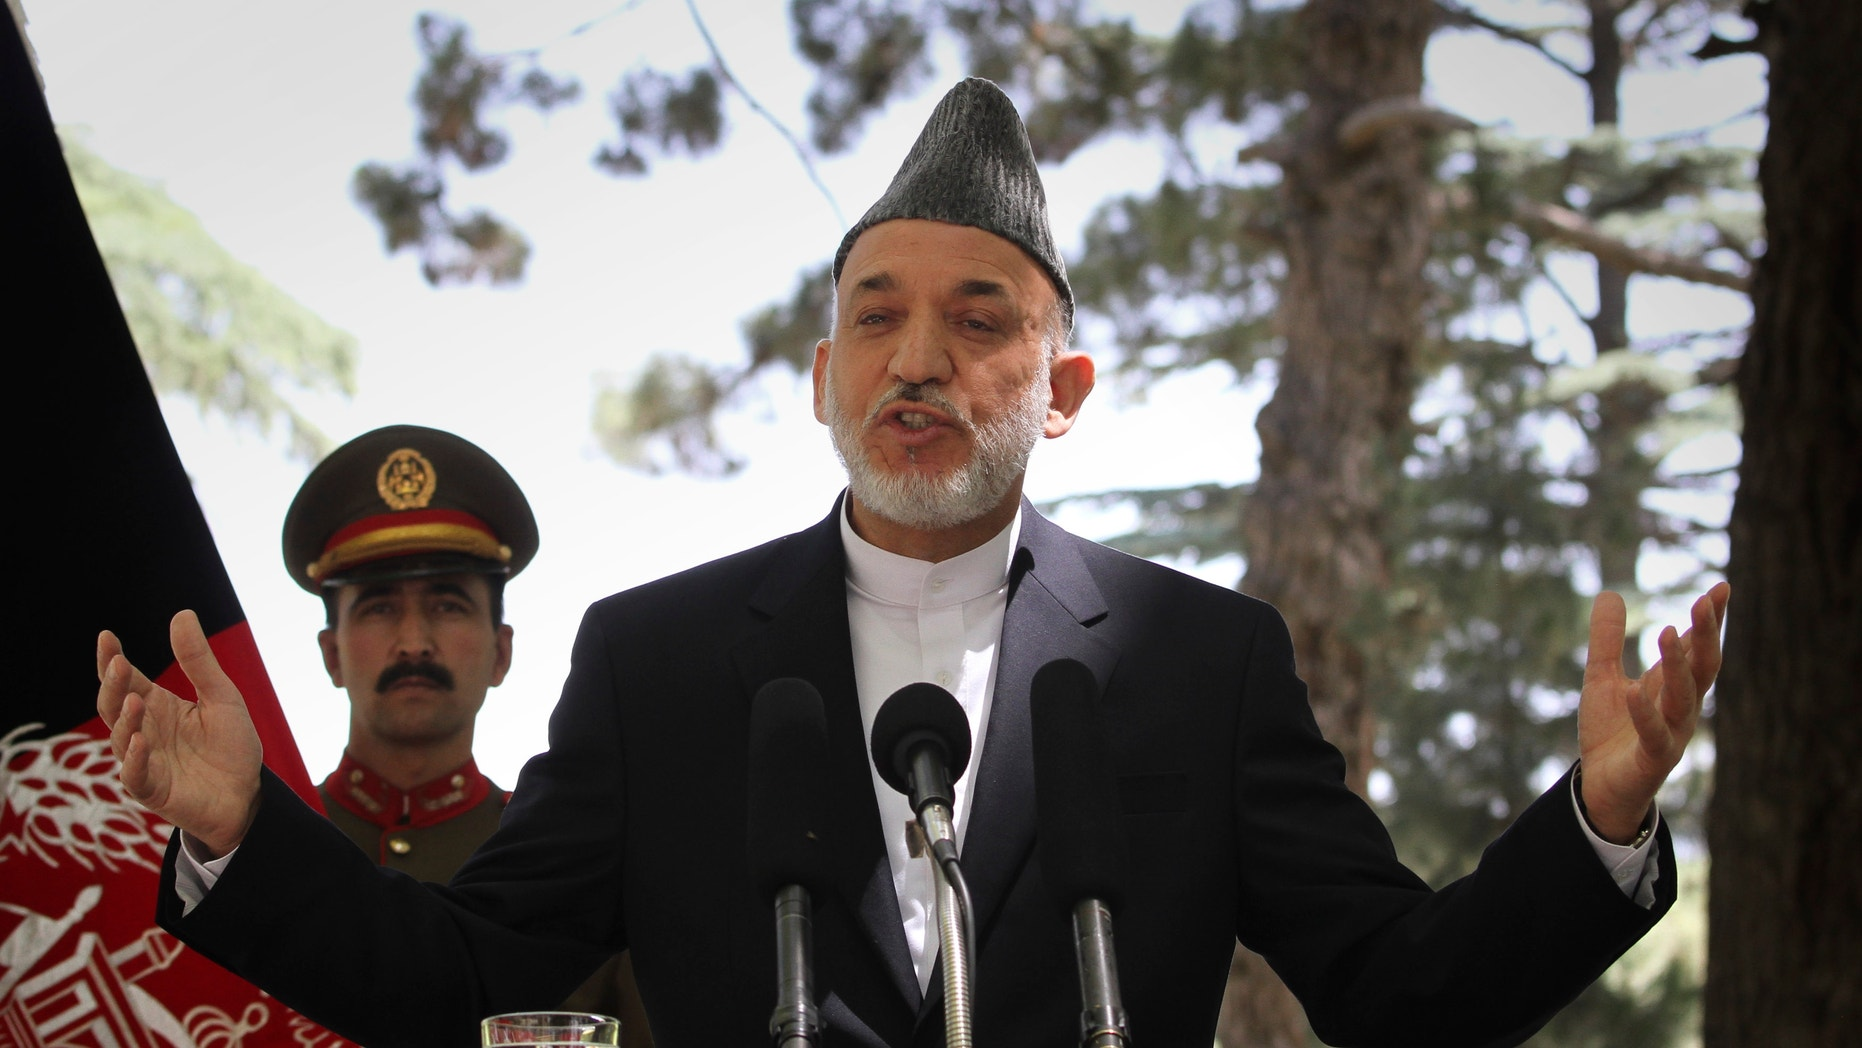 May 31: Afghan President Hamid Karzai speaks during a press conference at the presidential palace in Kabul, Afghanistan.